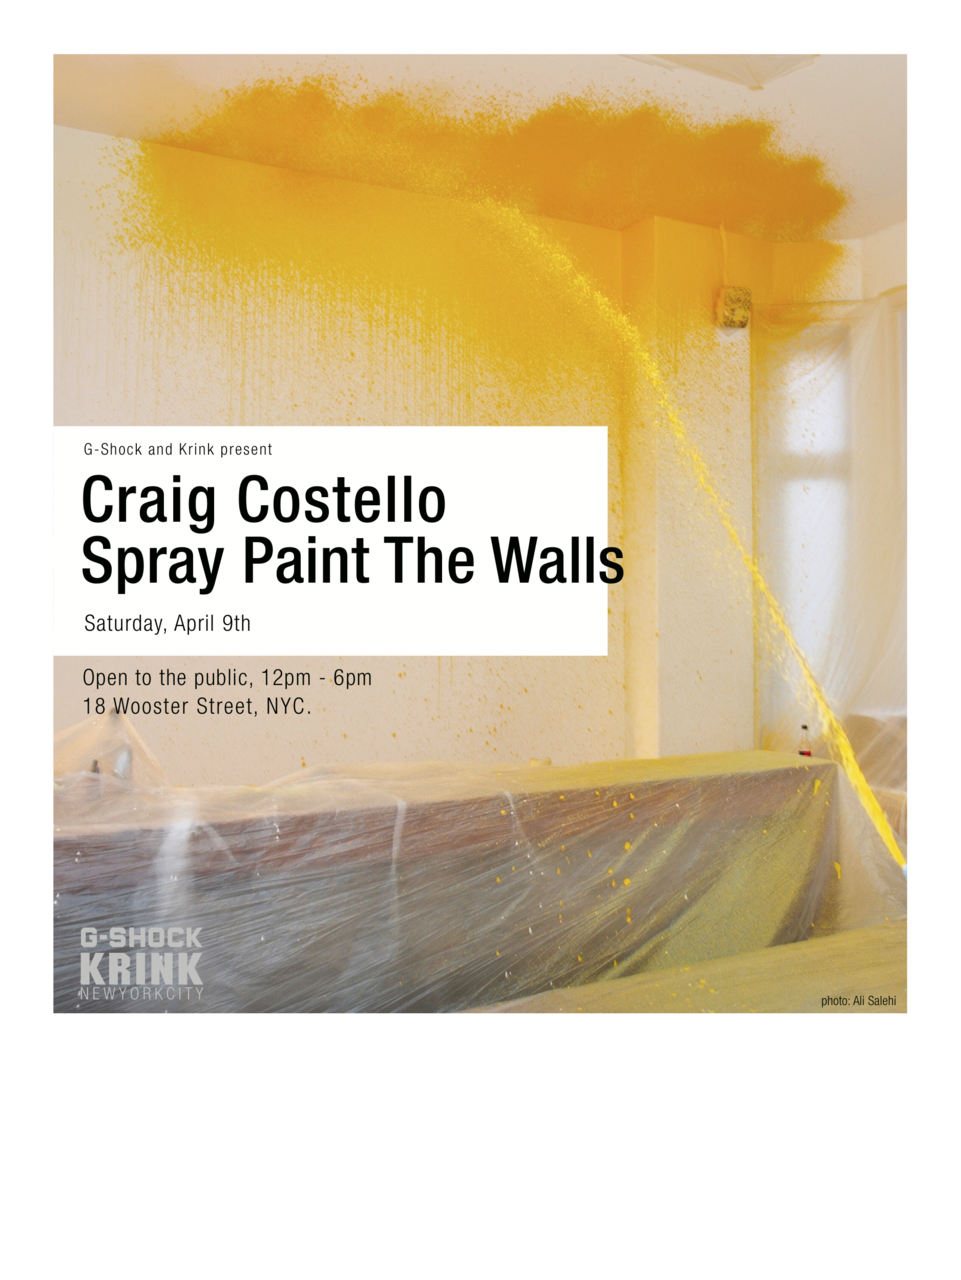 G-Shock and Krink present: Craig Costello Spray Paint The Walls Saturday, April 9th Open to the public, 12pm - 6pm 18 Wooster Street, NYC.